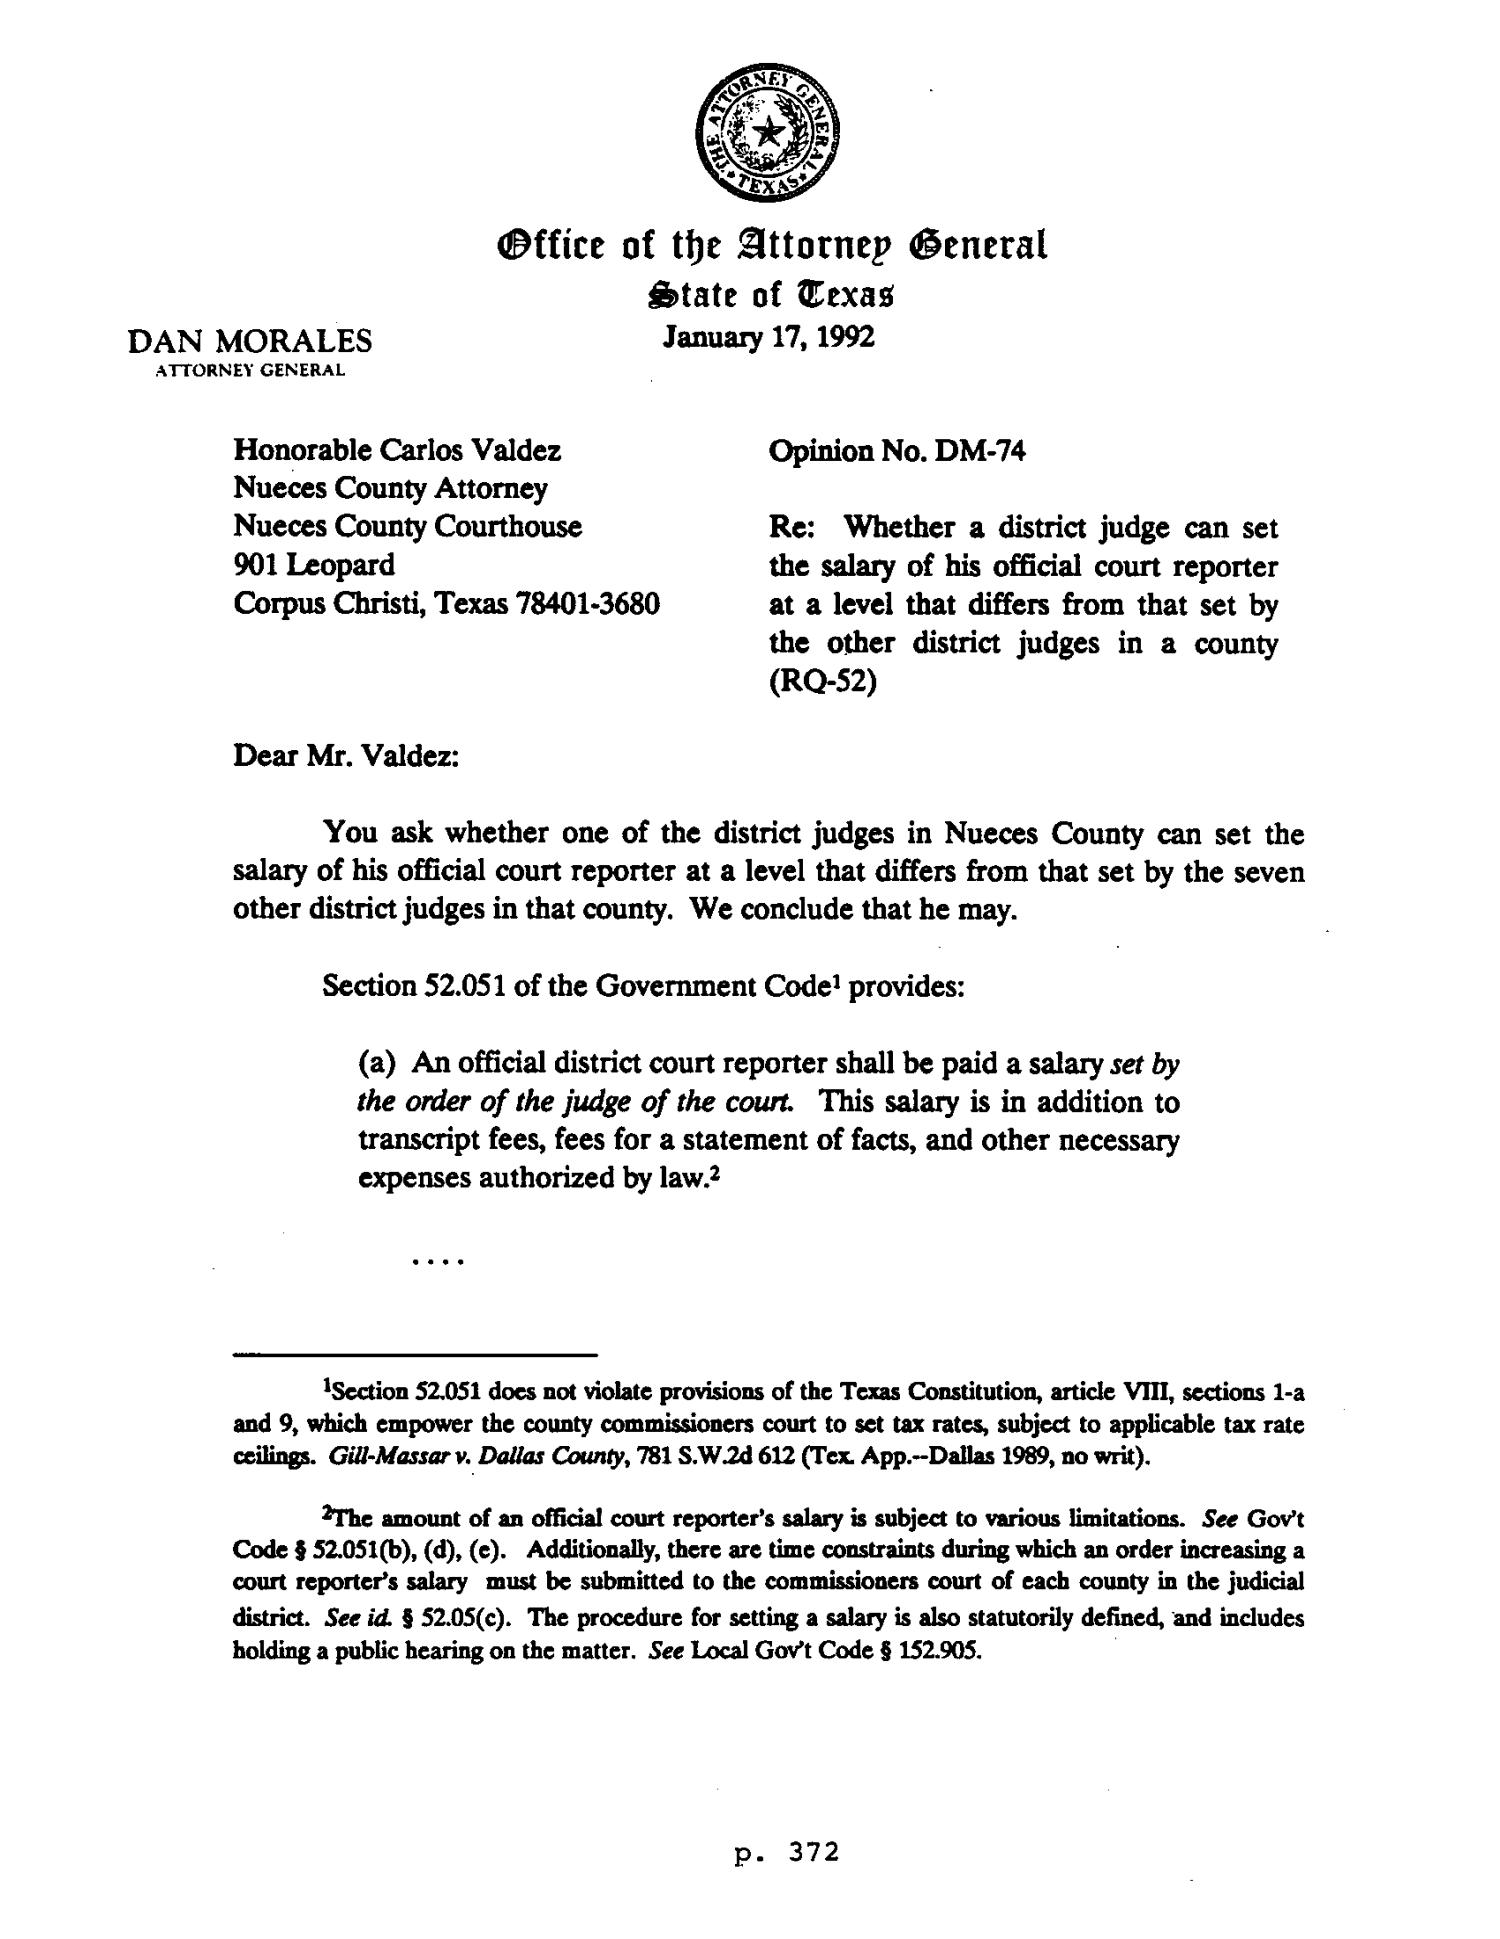 Texas Attorney General Opinion: DM-74 - Page 1 of 3 - The